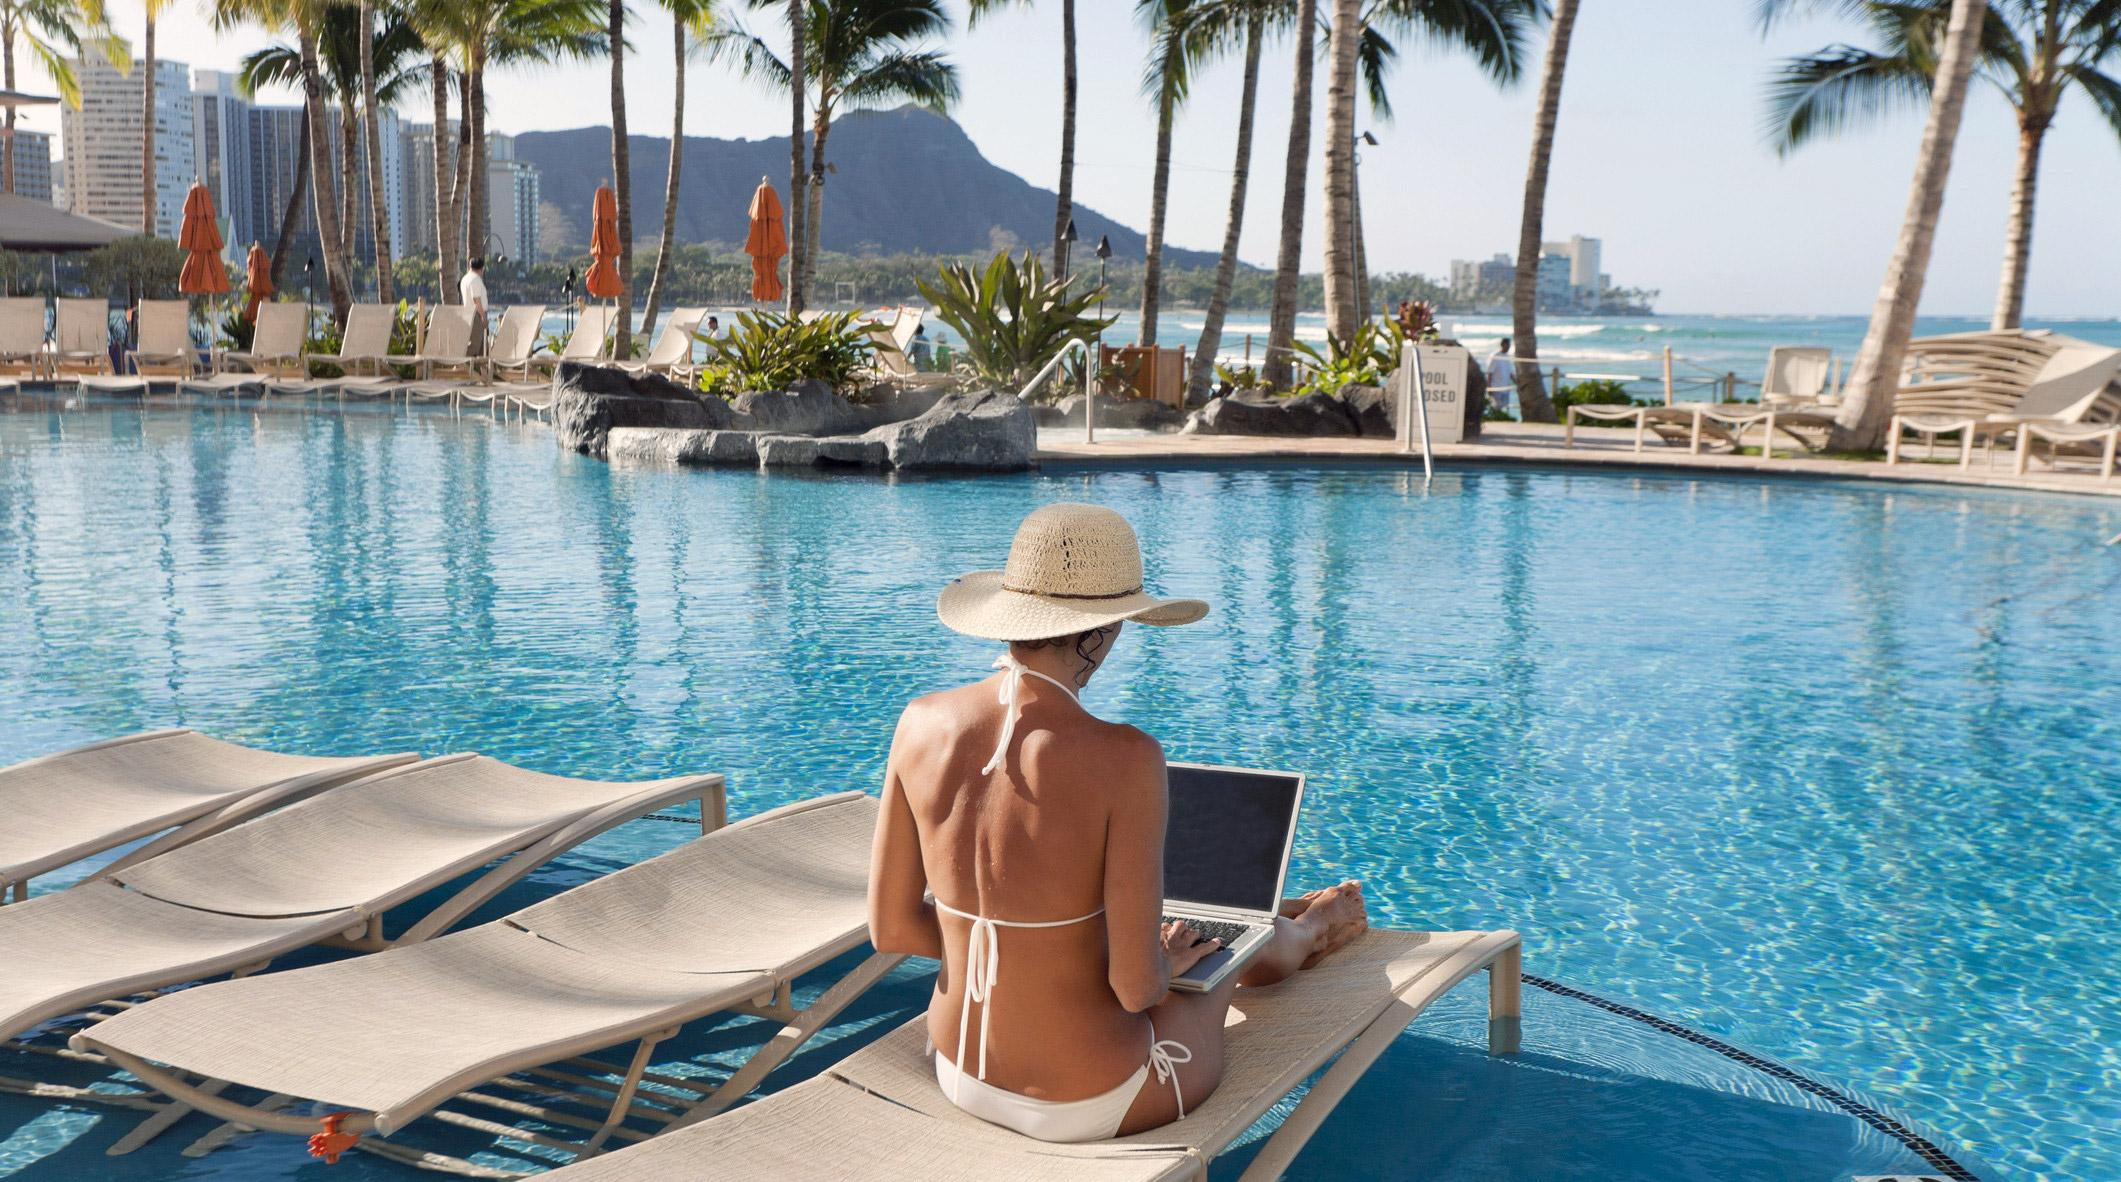 Freelance designer digital nomad remote working at a pool.